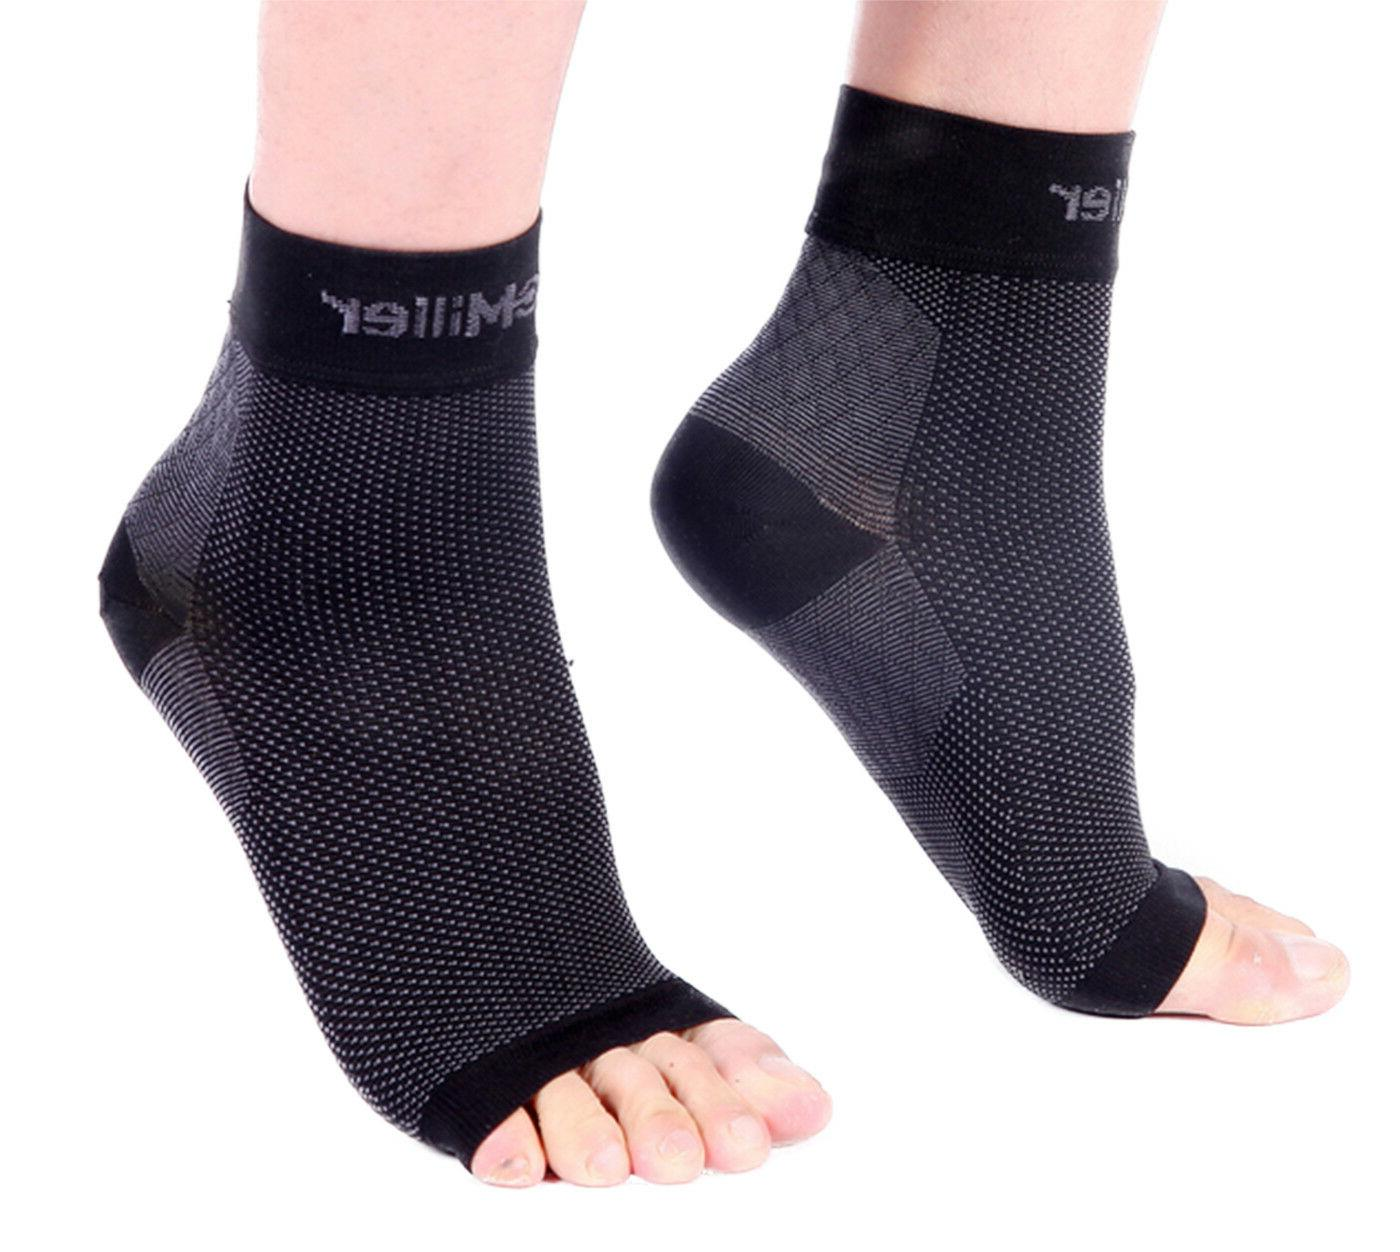 Doc Arch Support Compression Brace Sock